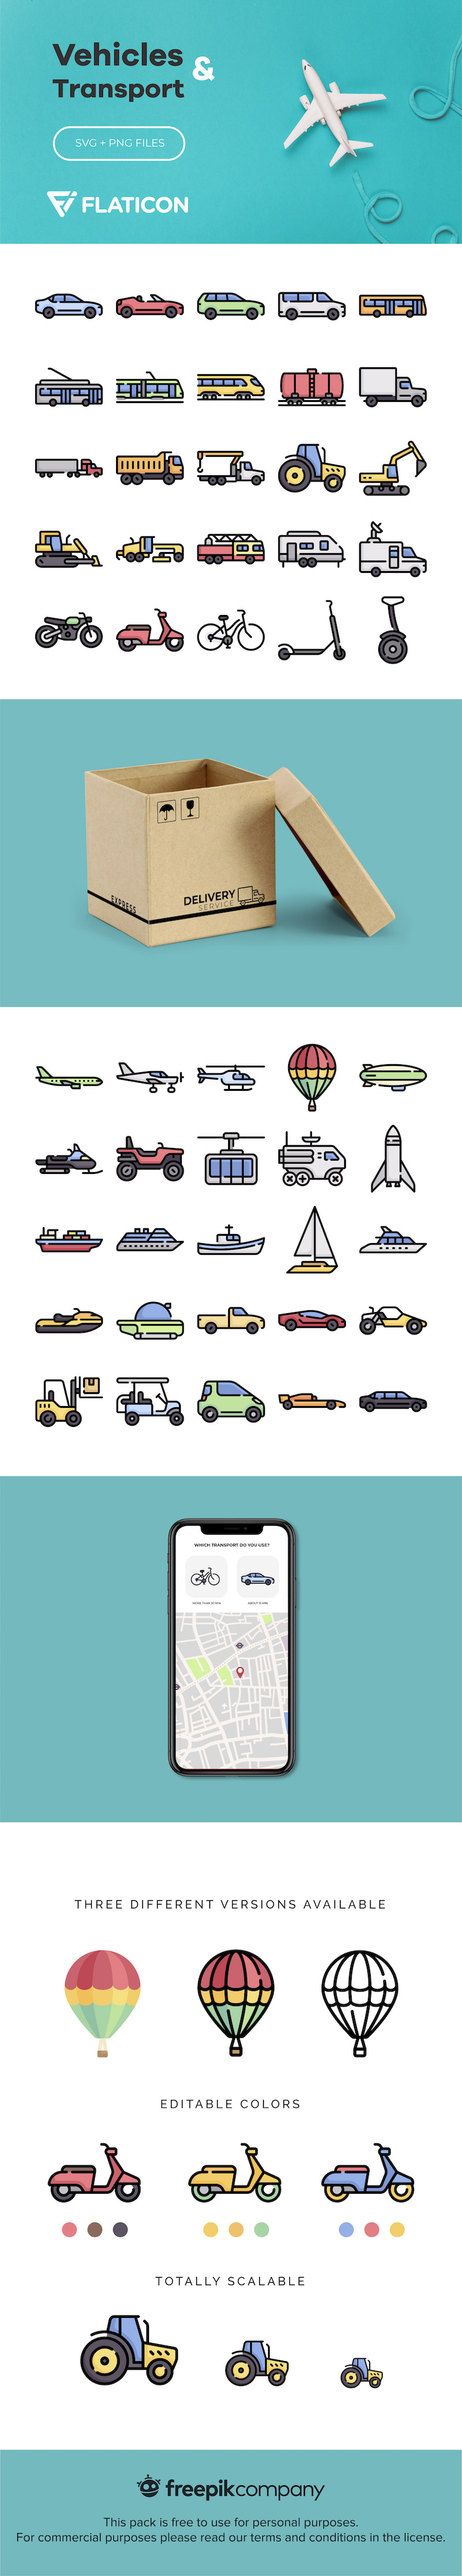 free vehicle transport icons svg